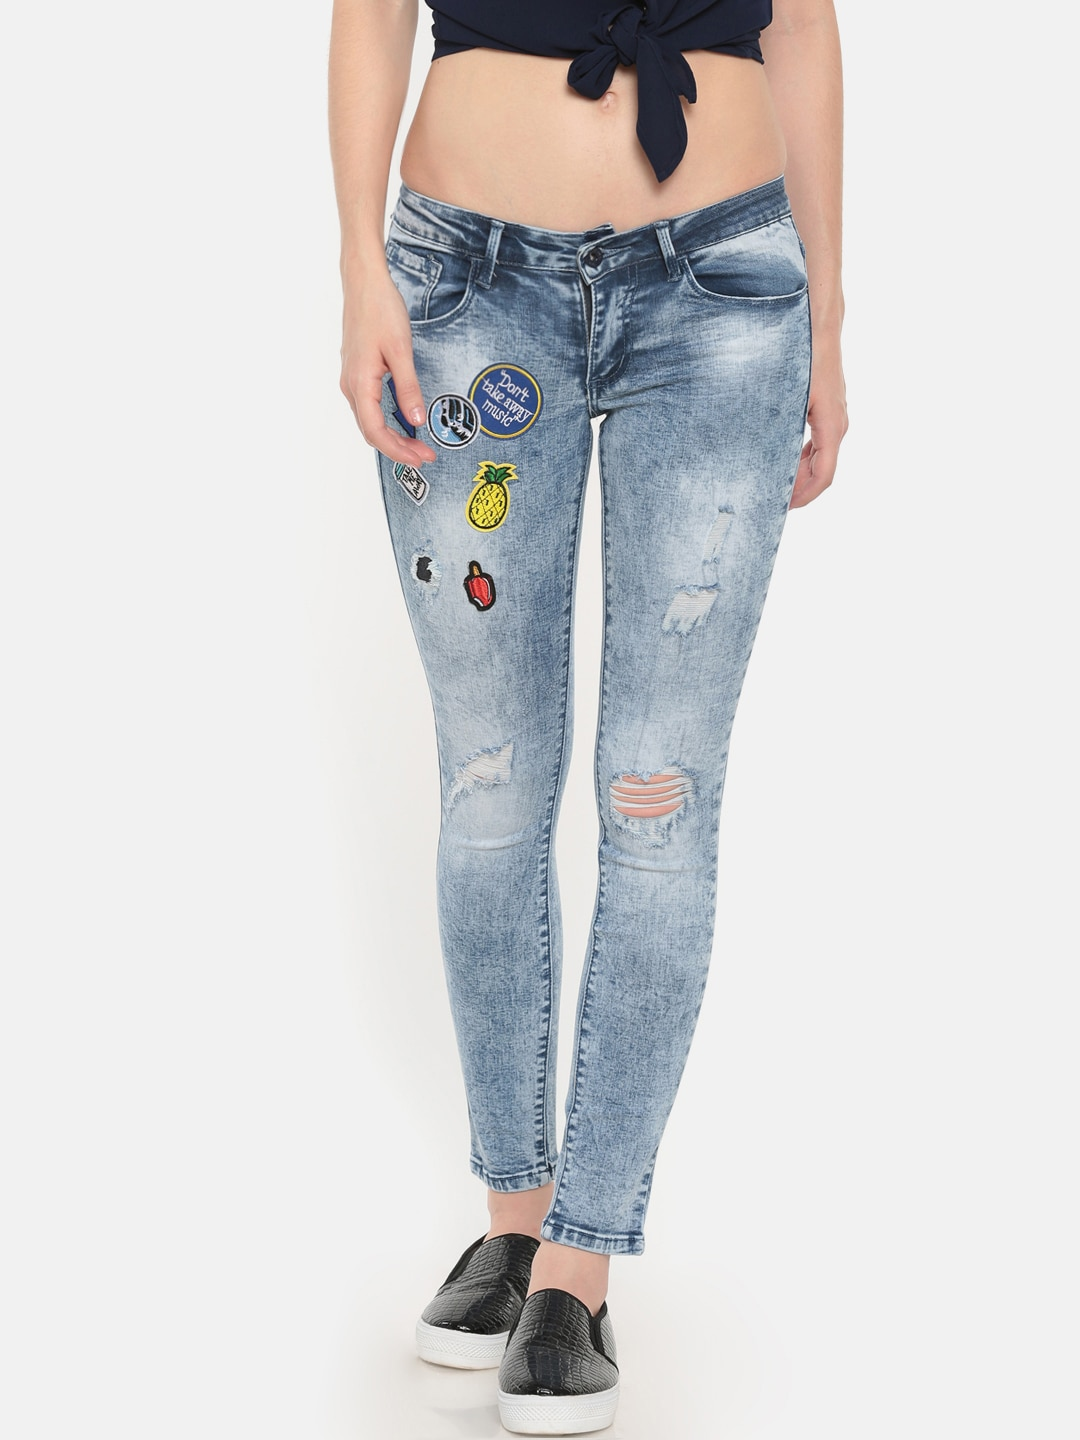 b96d000fc85 Deal Jeans - Exclusive Deal Jeans Online Store in India at Myntra